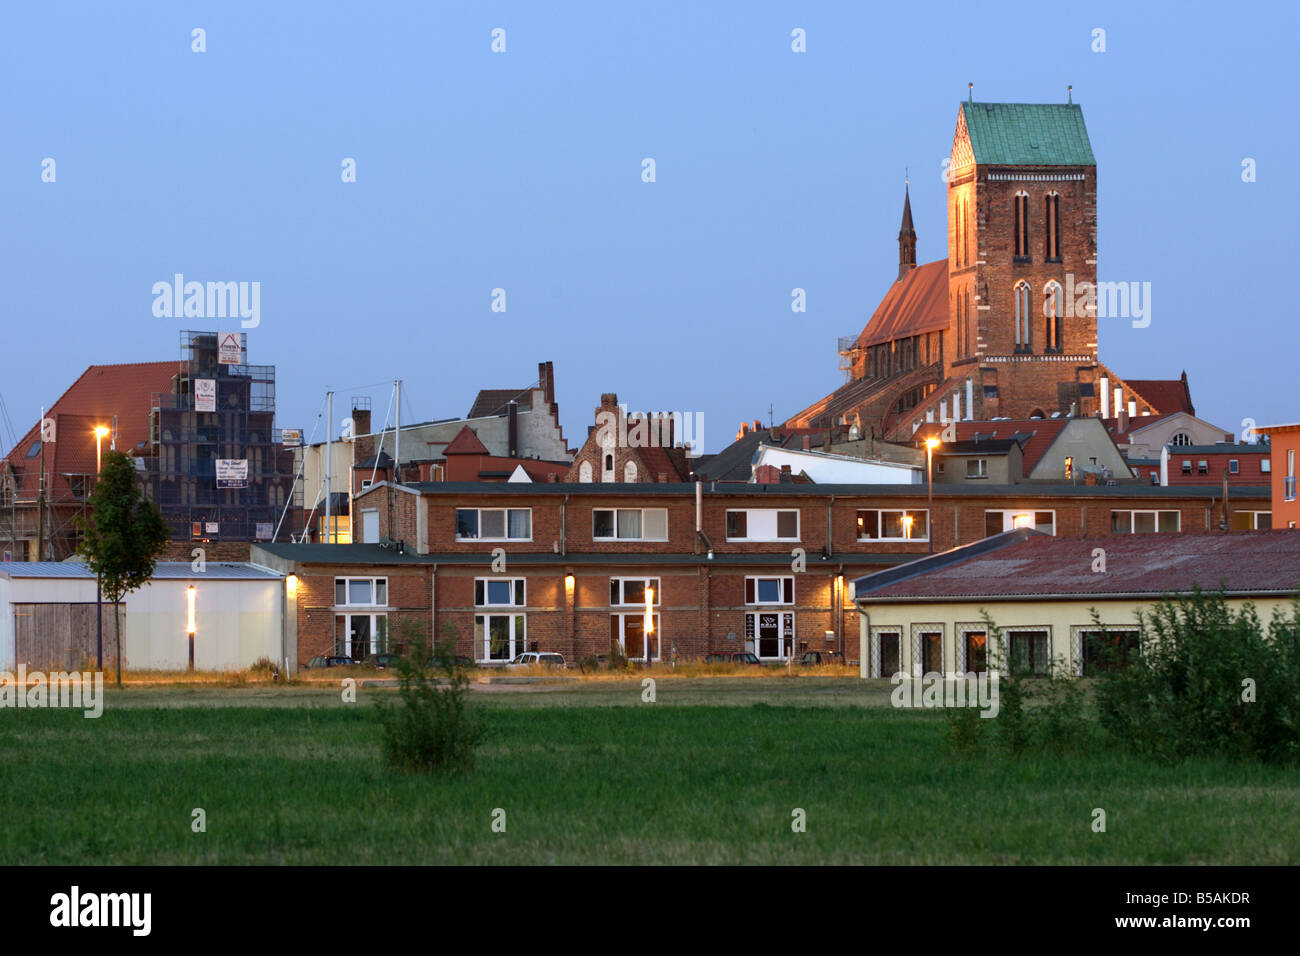 Cityscape with St. Nikolai's Church in Wismar, Germany - Stock Image